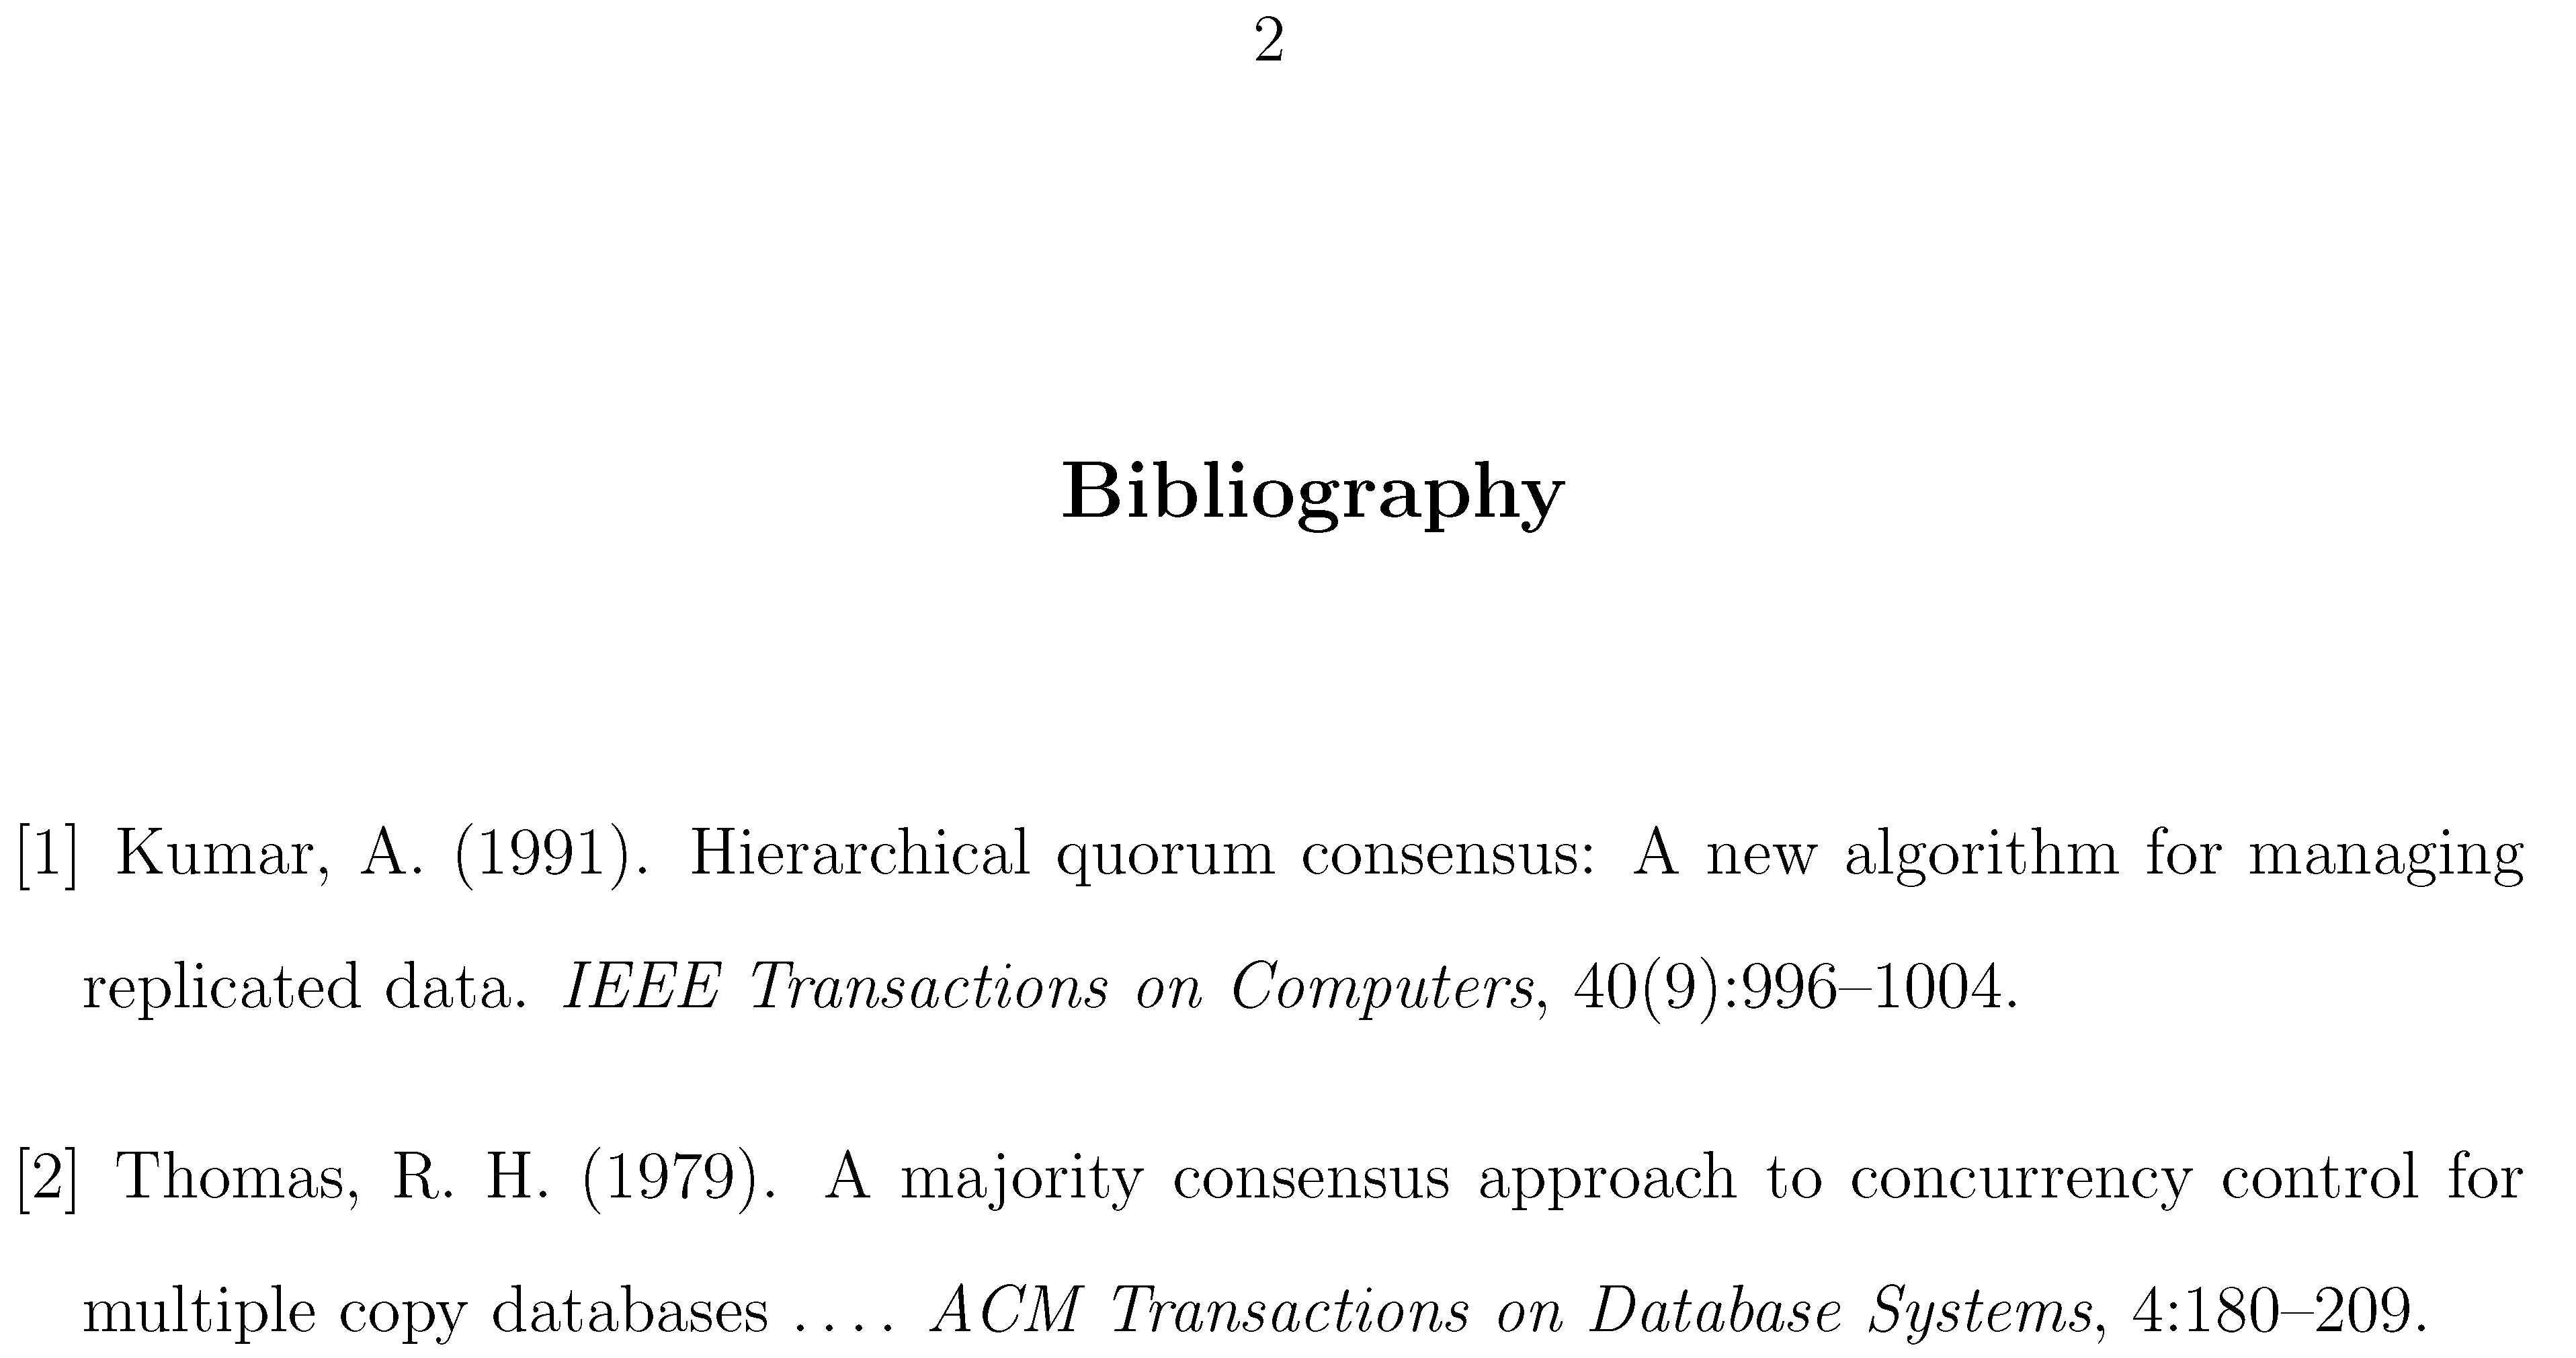 Bibliography apa. Bibliographies how to sequence